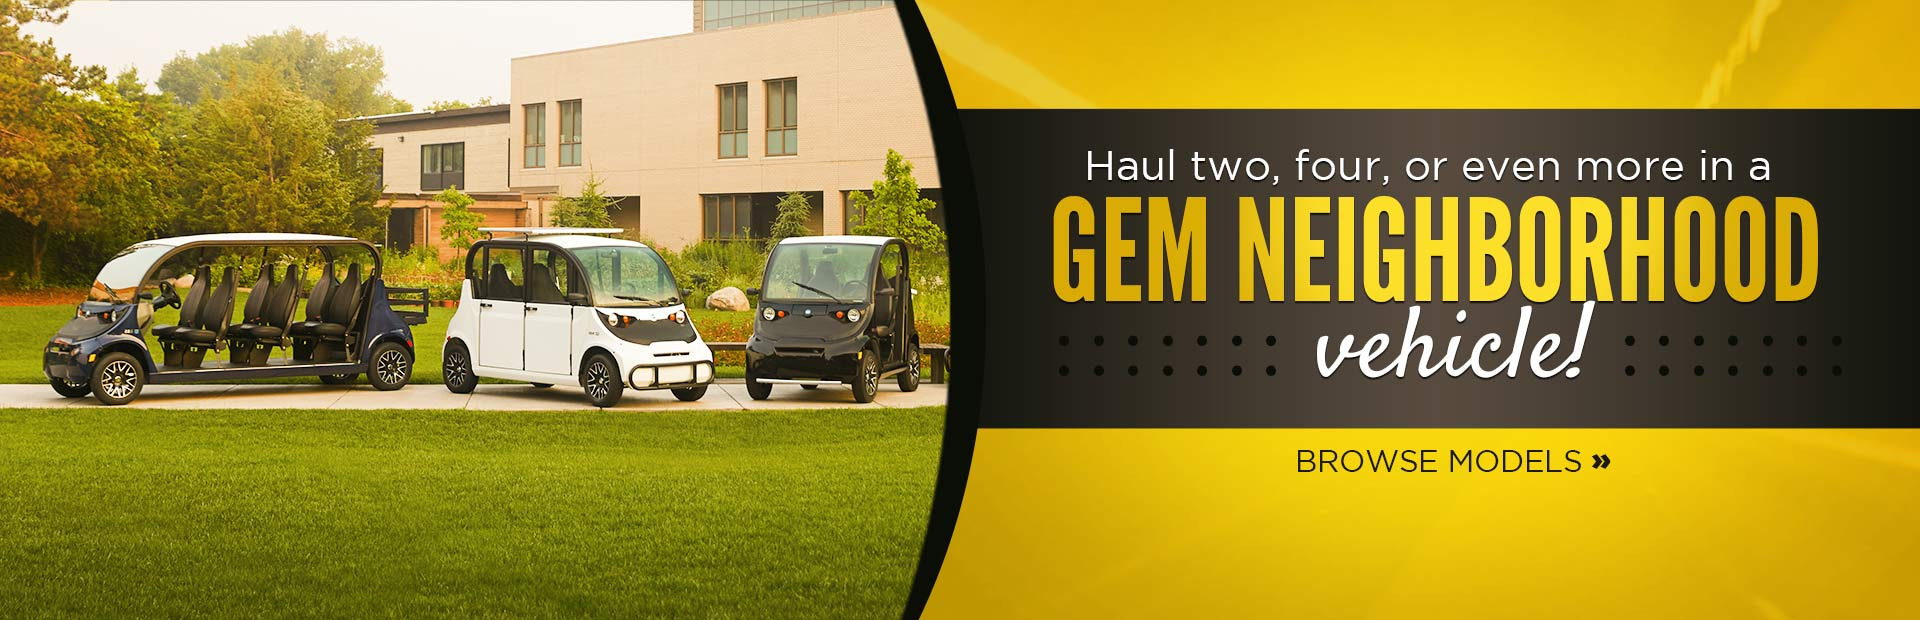 Click here to view GEM vehicles.